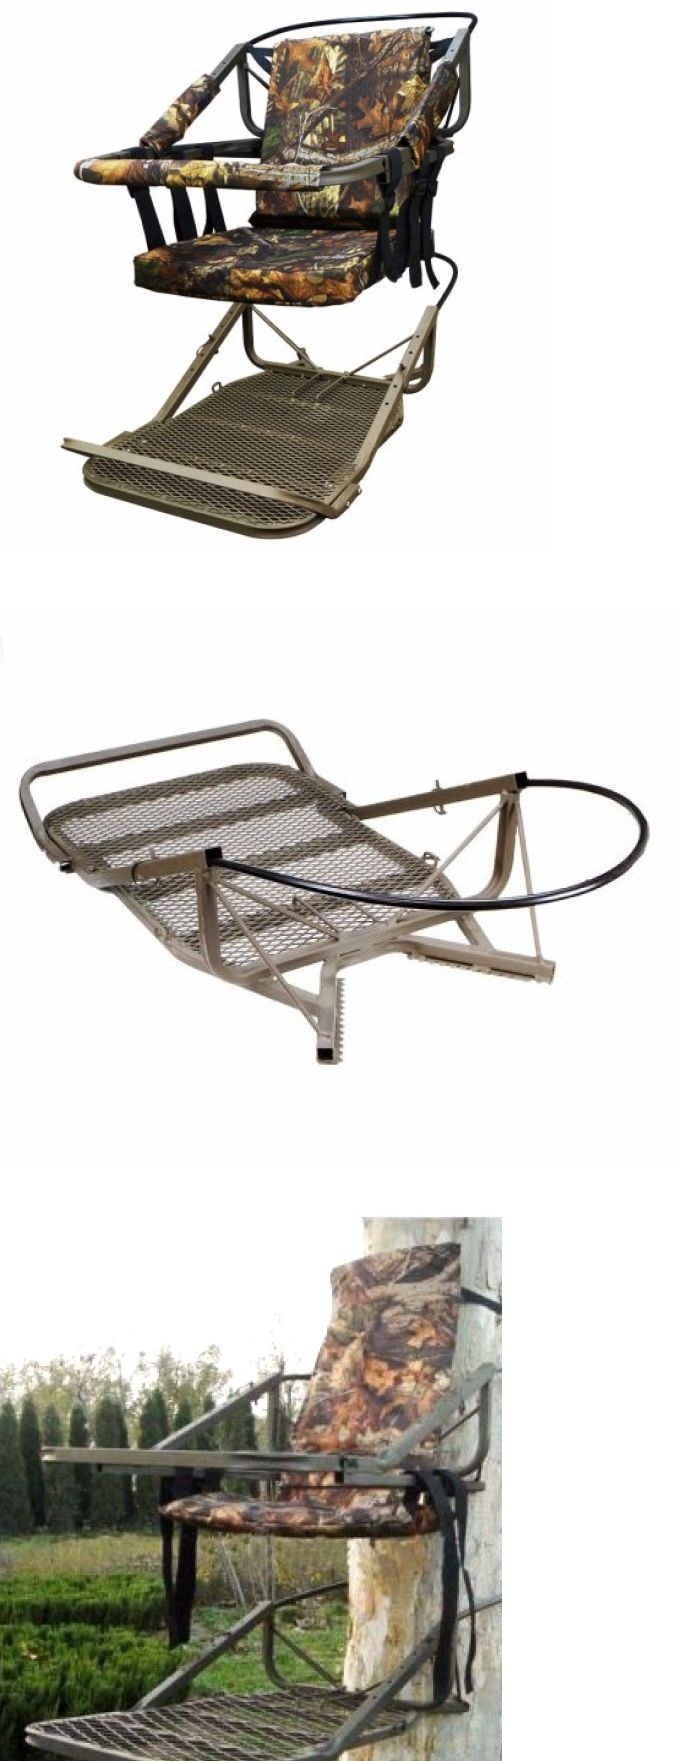 Blind and Tree Stand Accessories 177912: Climbing Hunting Stand 300 Pound Capacity Camo Comfort Seat * To 20 Tree -> BUY IT NOW ONLY: $249.95 on eBay!